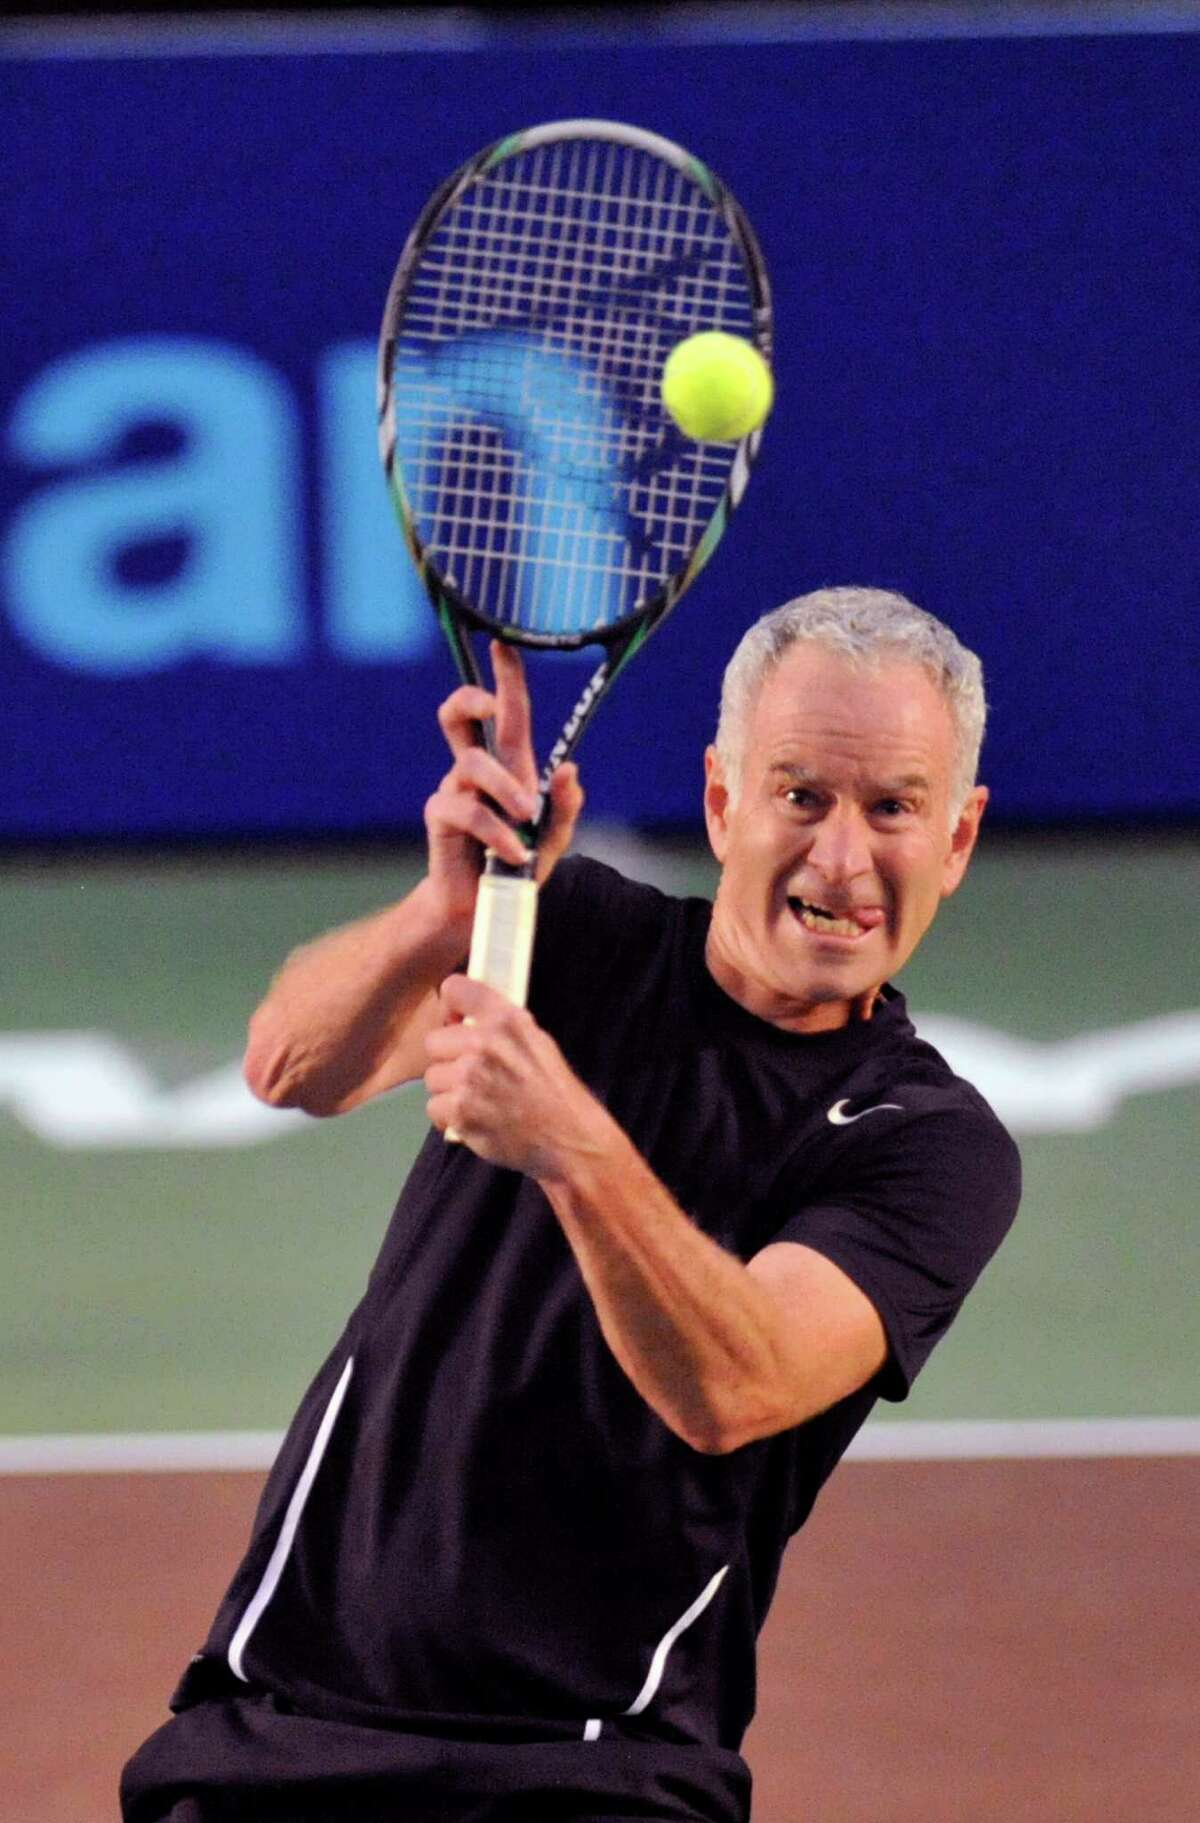 John McEnroe of the New York Sportimes returns the ball against the Orange County Breakers in a World Team Tennis match at SEFCU Arena in Albany, N.Y., Thursday, July 18, 2013. (Hans Pennink / Special to the Times Union) ORG XMIT: HP101